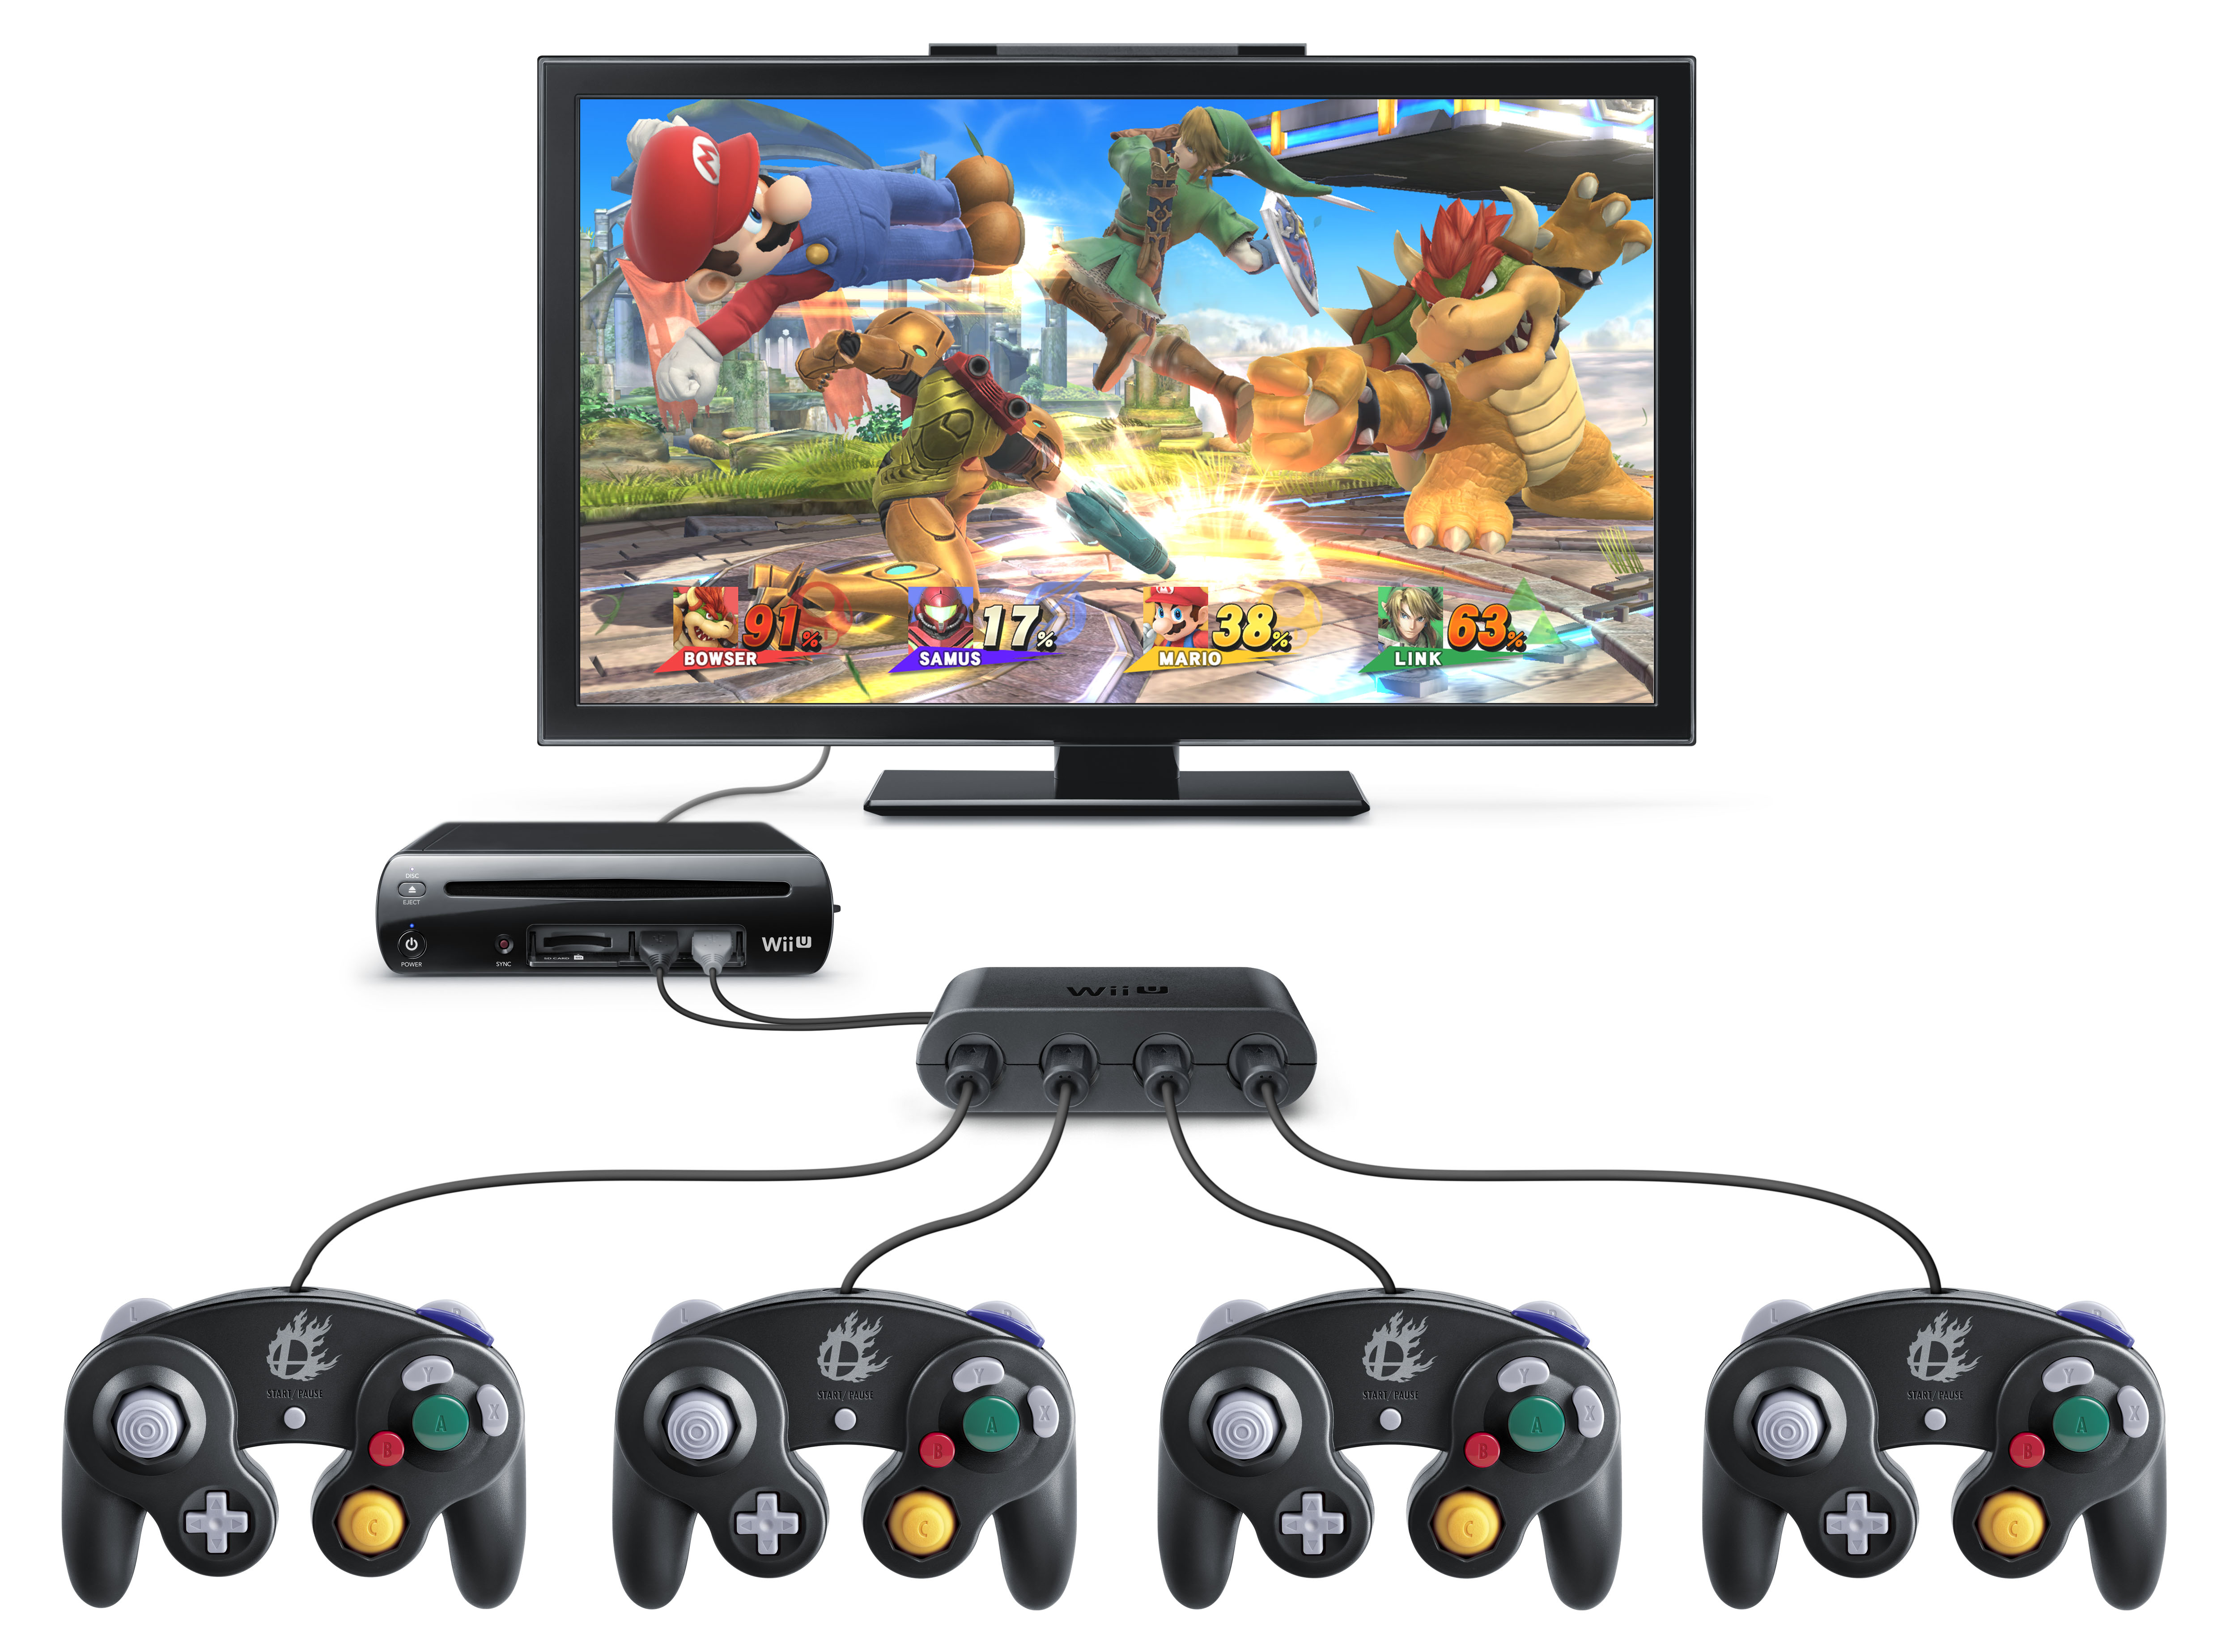 Here's how to get Wii U's GameCube Controller Adapter